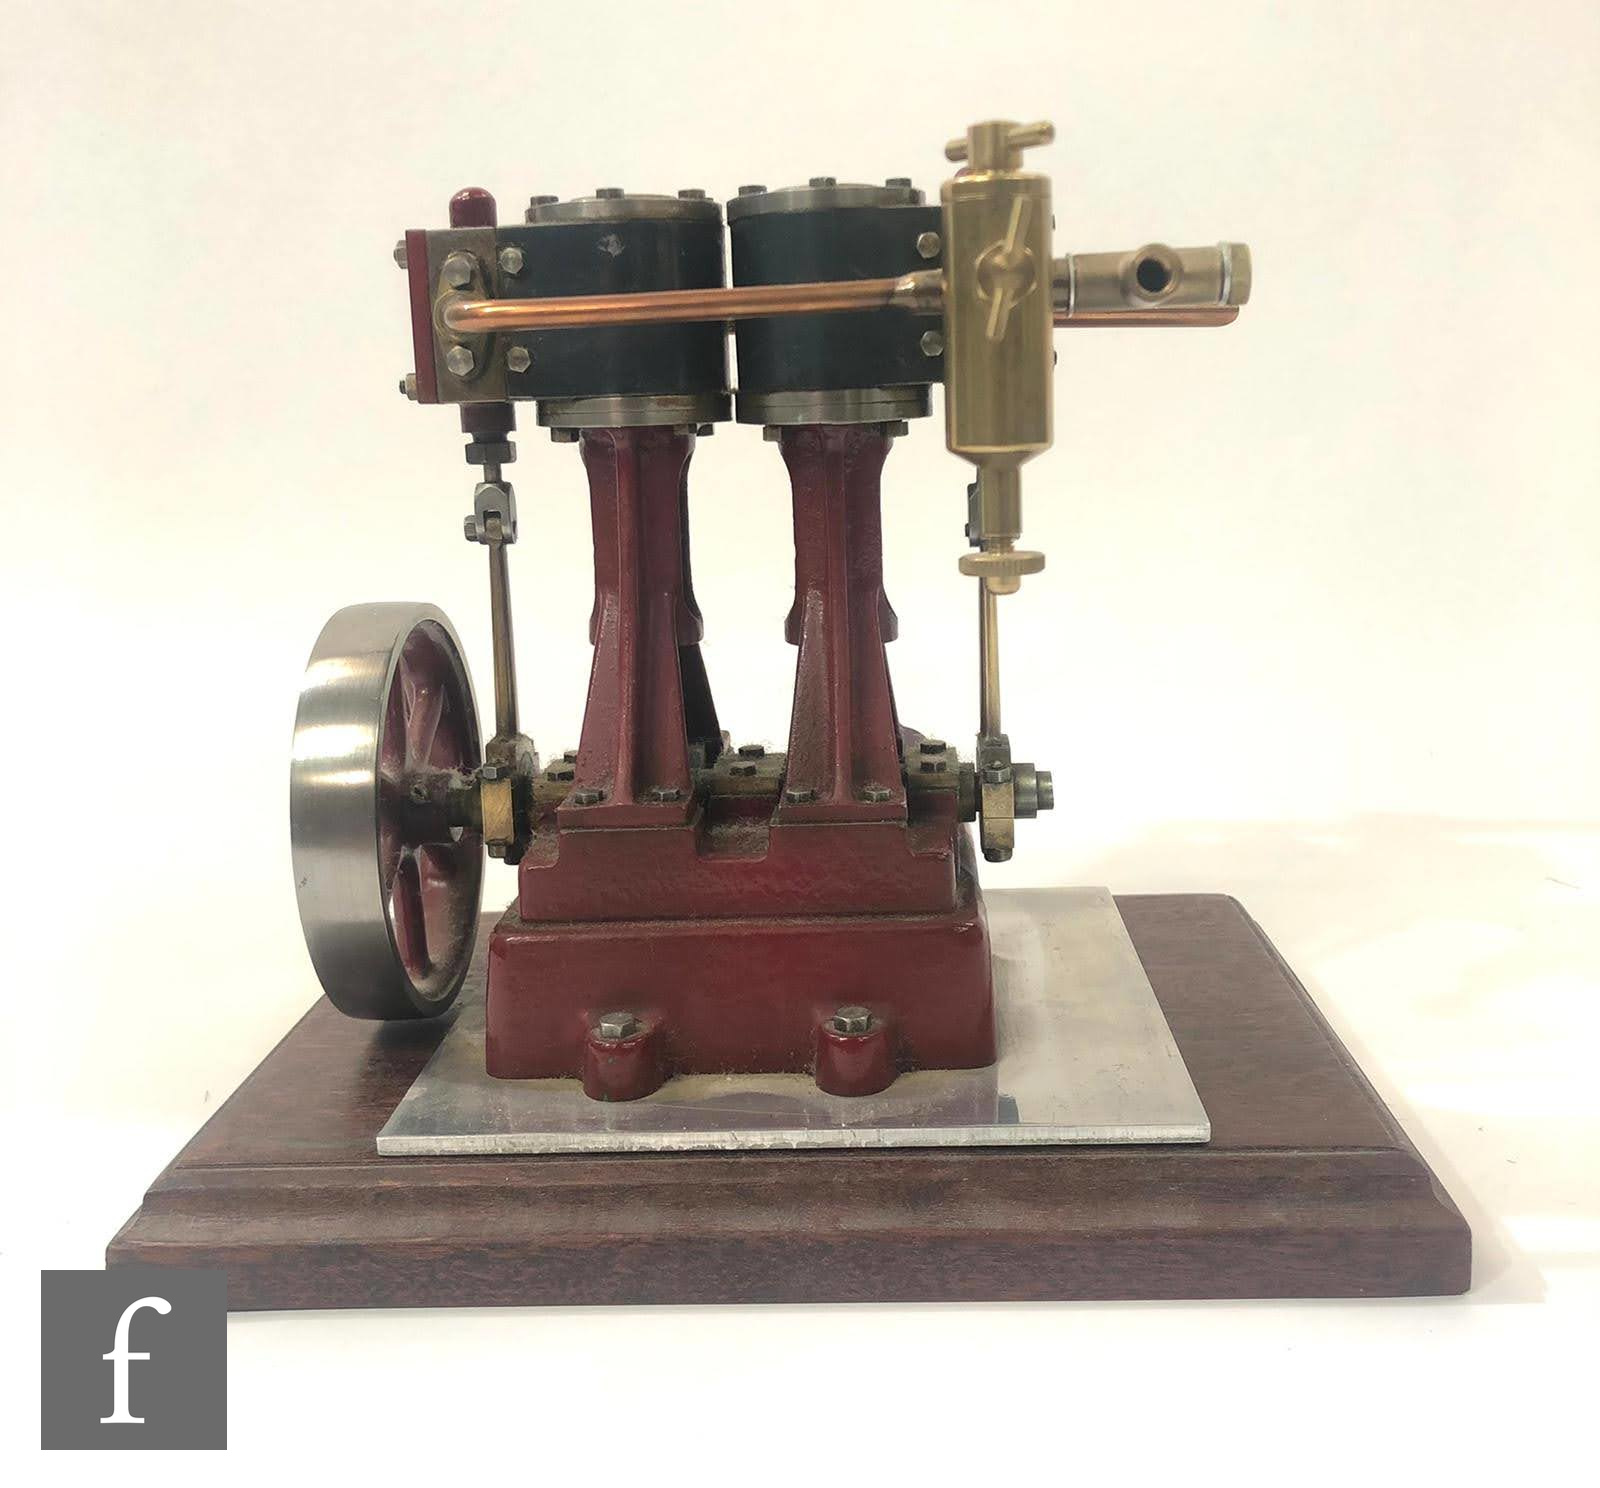 A vertical twin cylinder marine engine, painted in maroon with six spoked flywheel, with detached